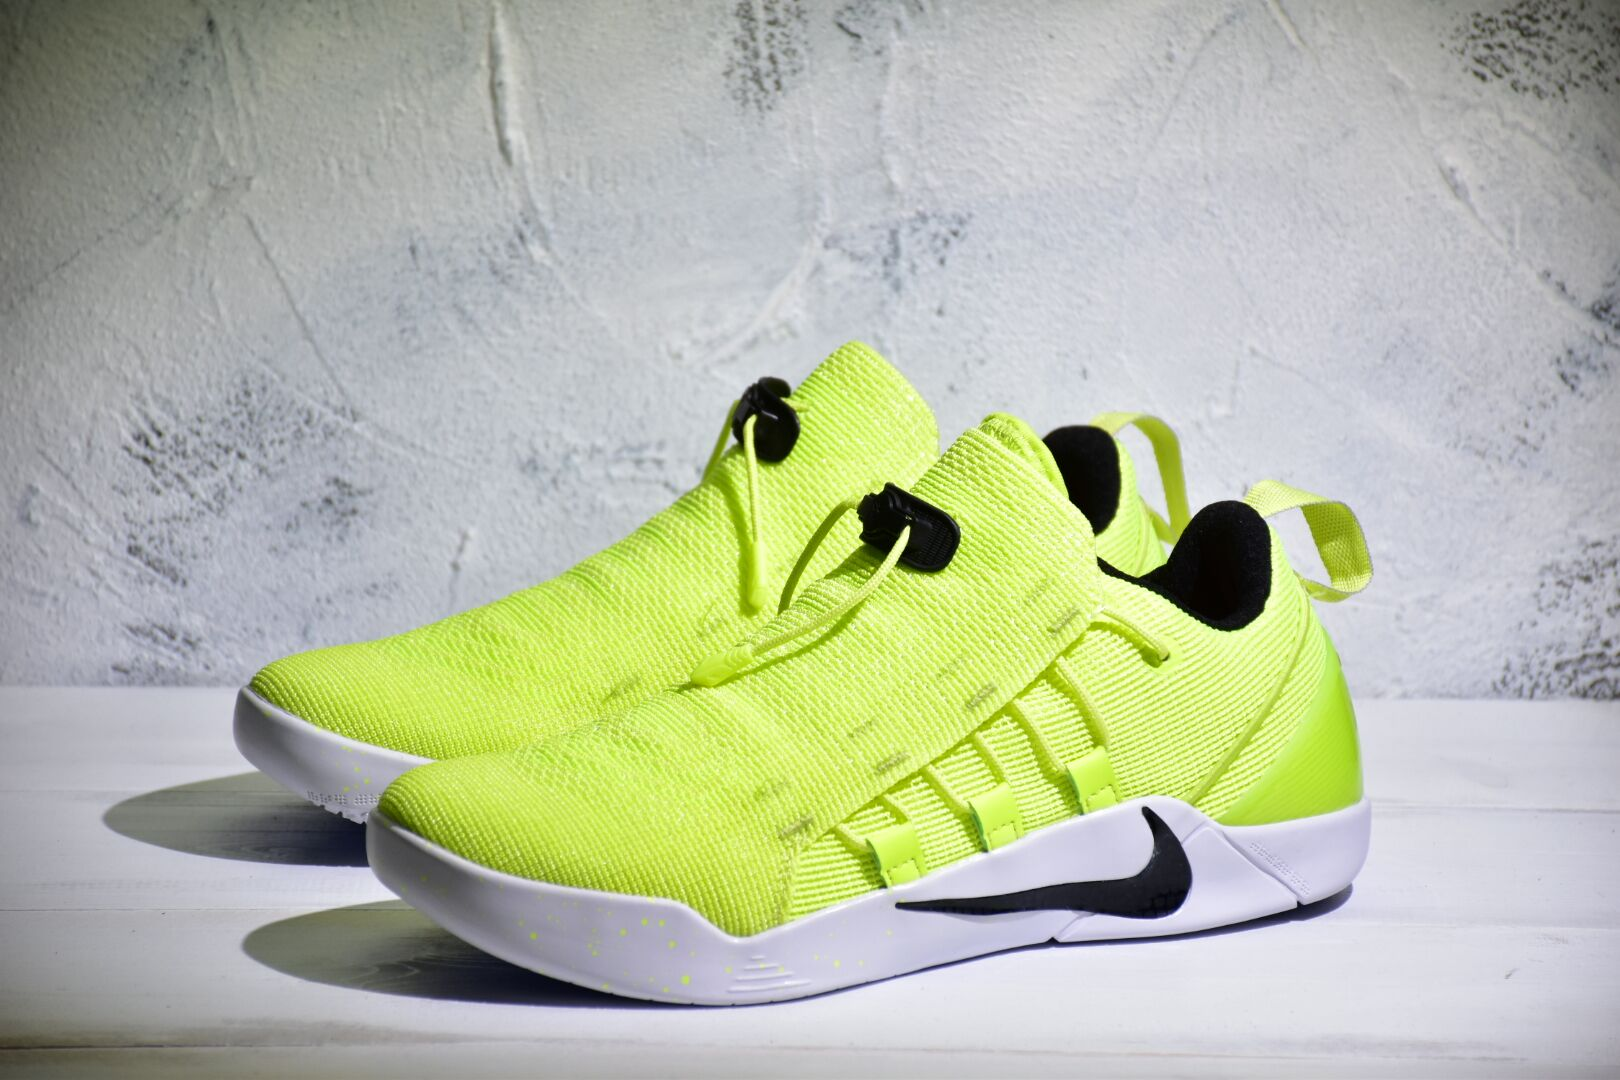 Nike Kobe A.D. Fluorscent Green White Shoes